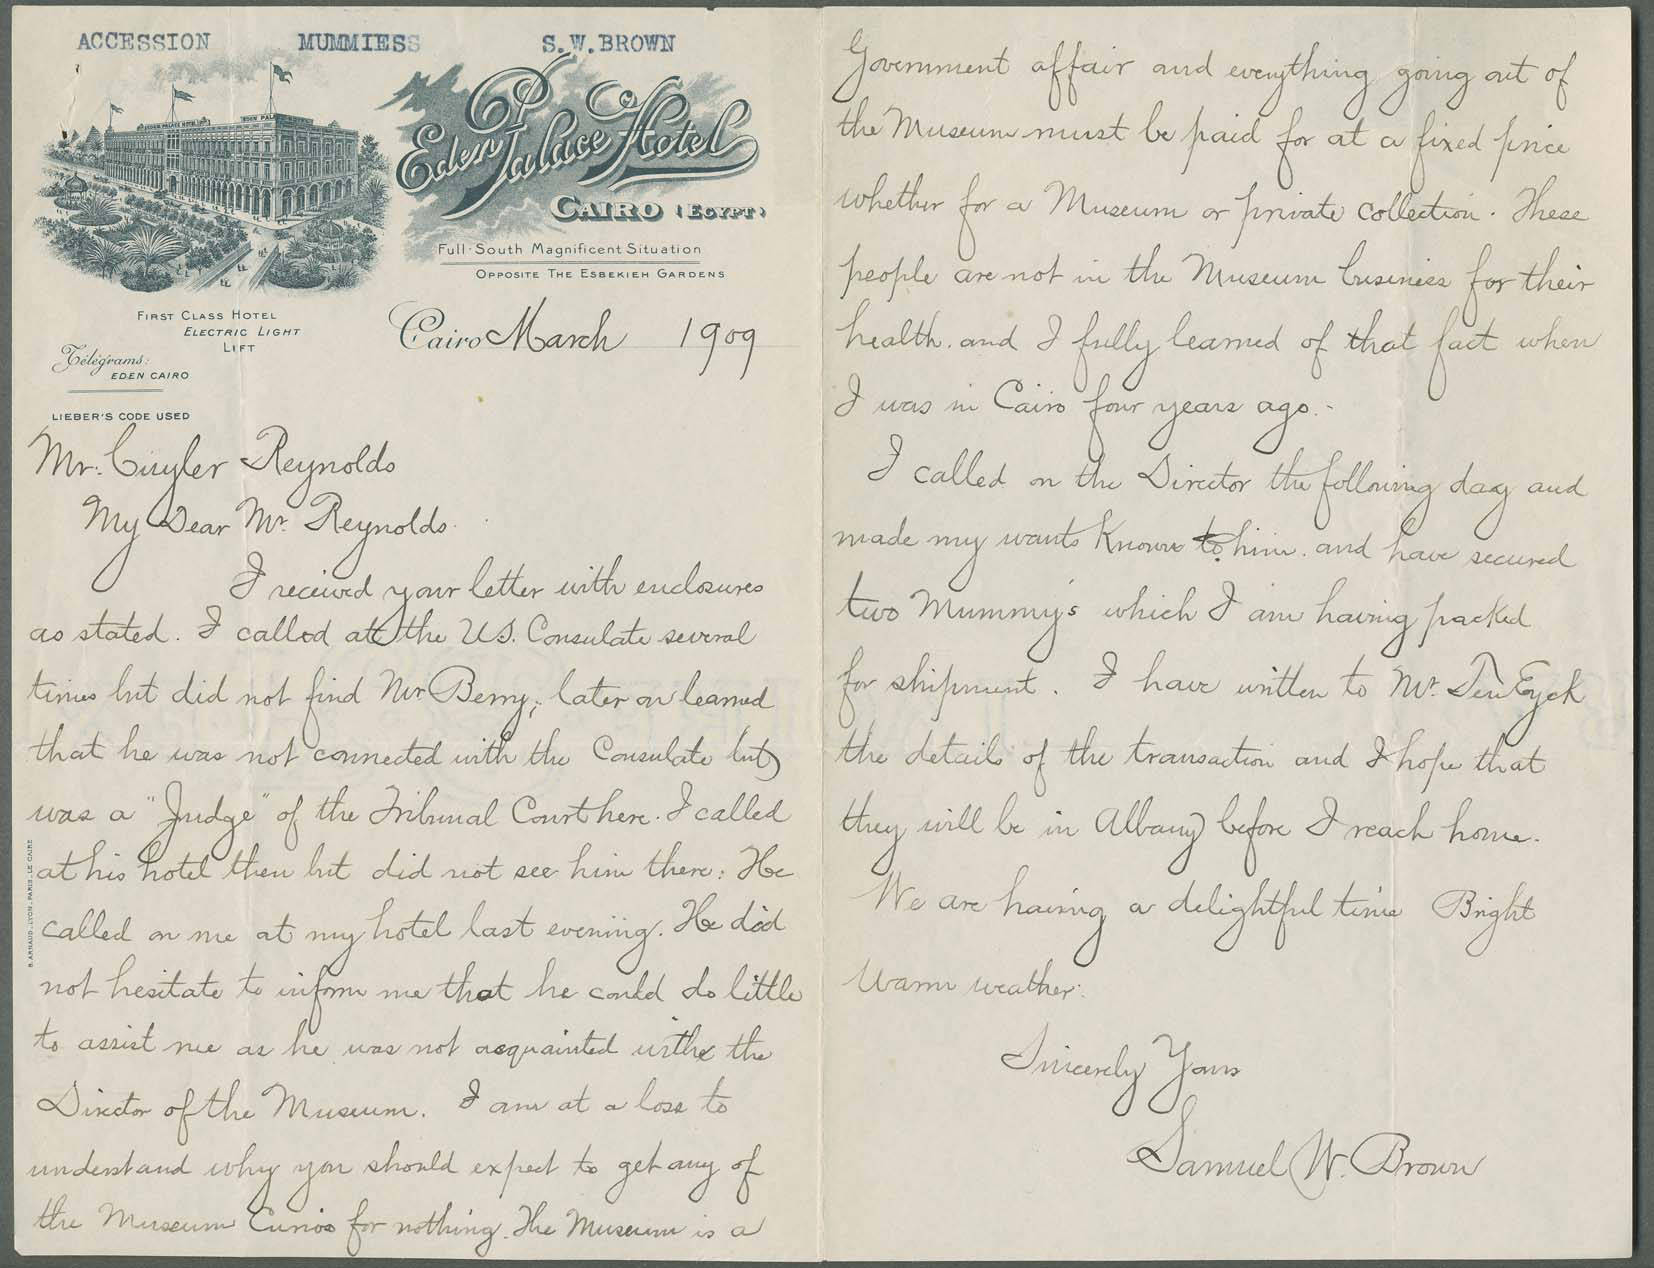 Letter_from_Samuel_W_Brown_to_Cuyler_Reynolds 1909 AIHA